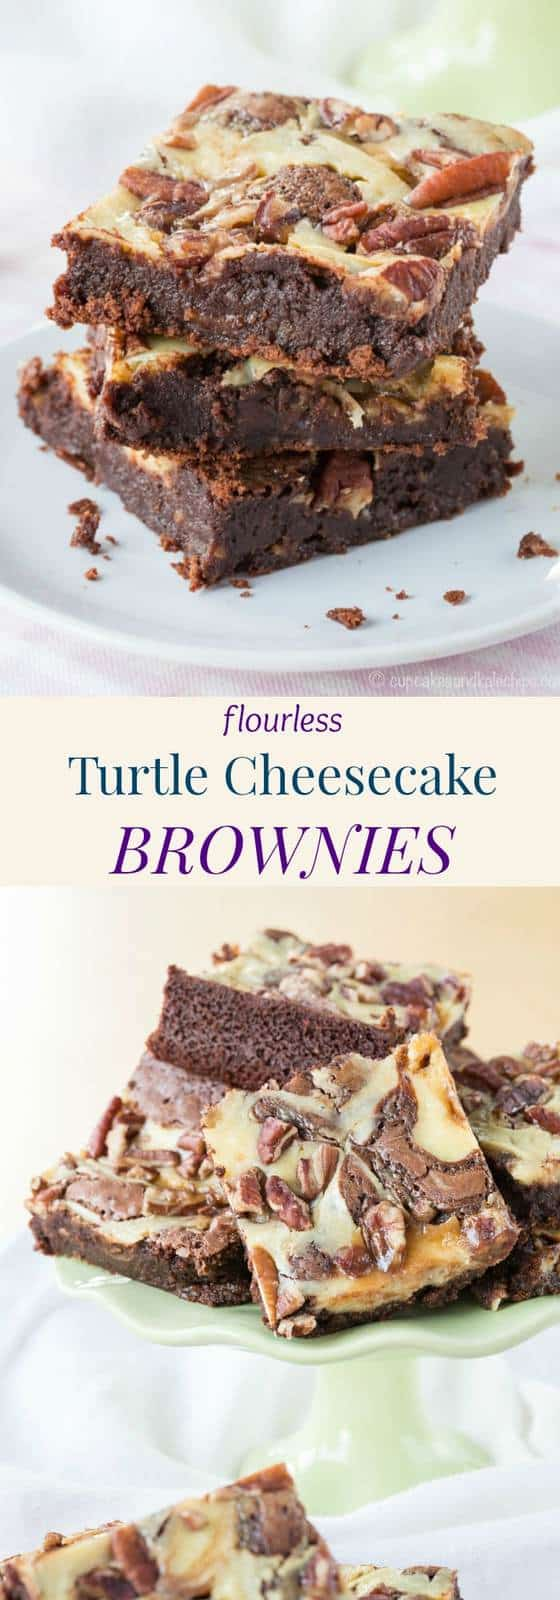 Flourless Turtle Cheesecake Brownies - this fudgy, naturally gluten free brownie recipe with the classic combination of chocolate, caramel, and pecans, plus a cheesecake swirl. #glutenfree #brownies